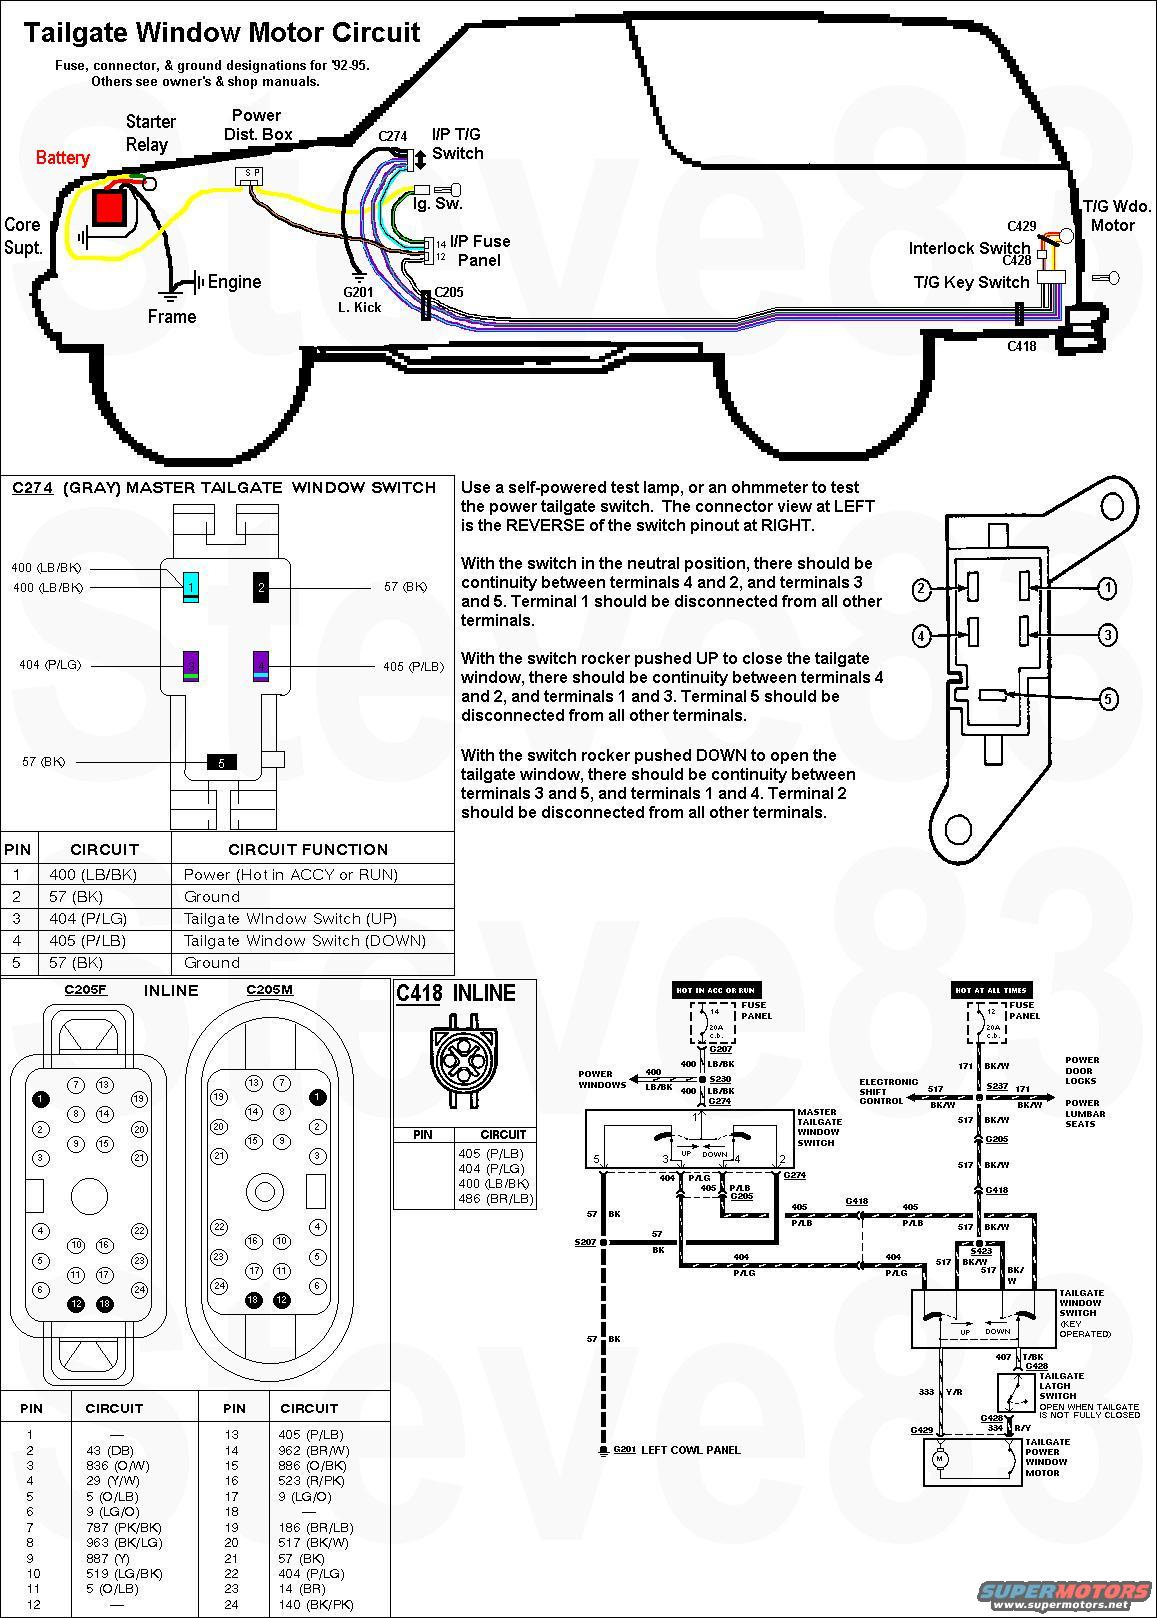 1996 ford bronco radio wiring diagram 2016 dodge truck trailer 302 found